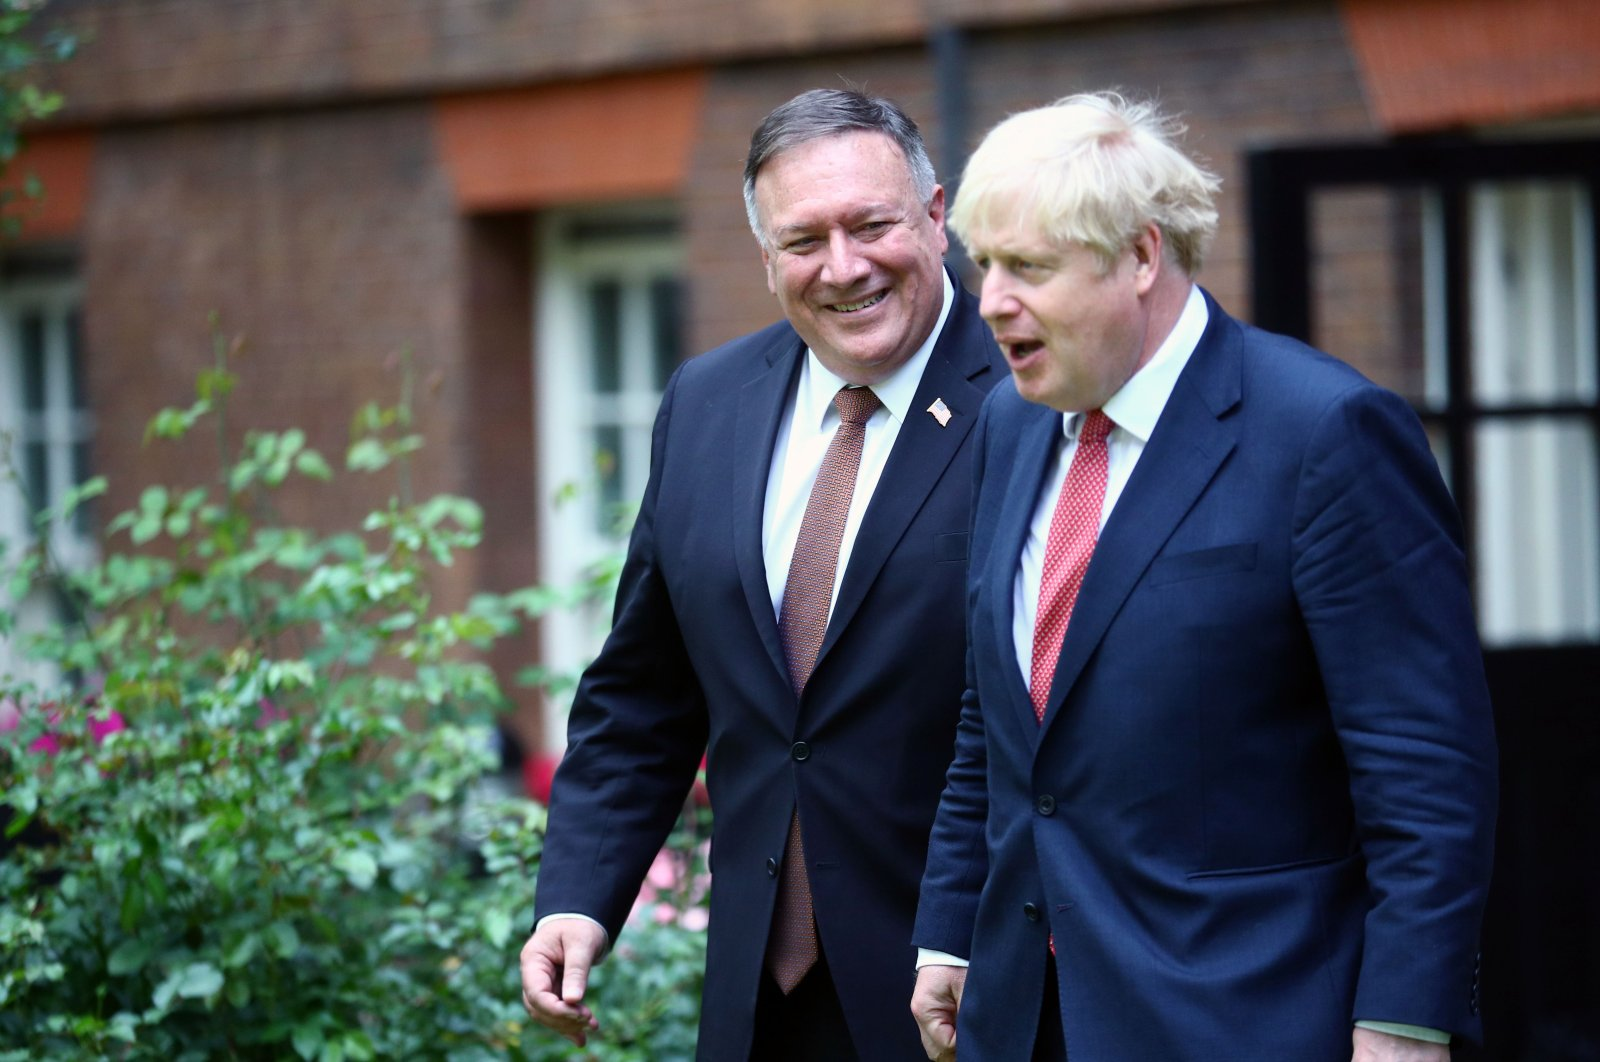 U.S. Secretary of State Mike Pompeo (L) talks with Britain's Prime Minister Boris Johnson on arrival at Downing Street in central London, Britain, July 21, 2020. (AFP Photo)